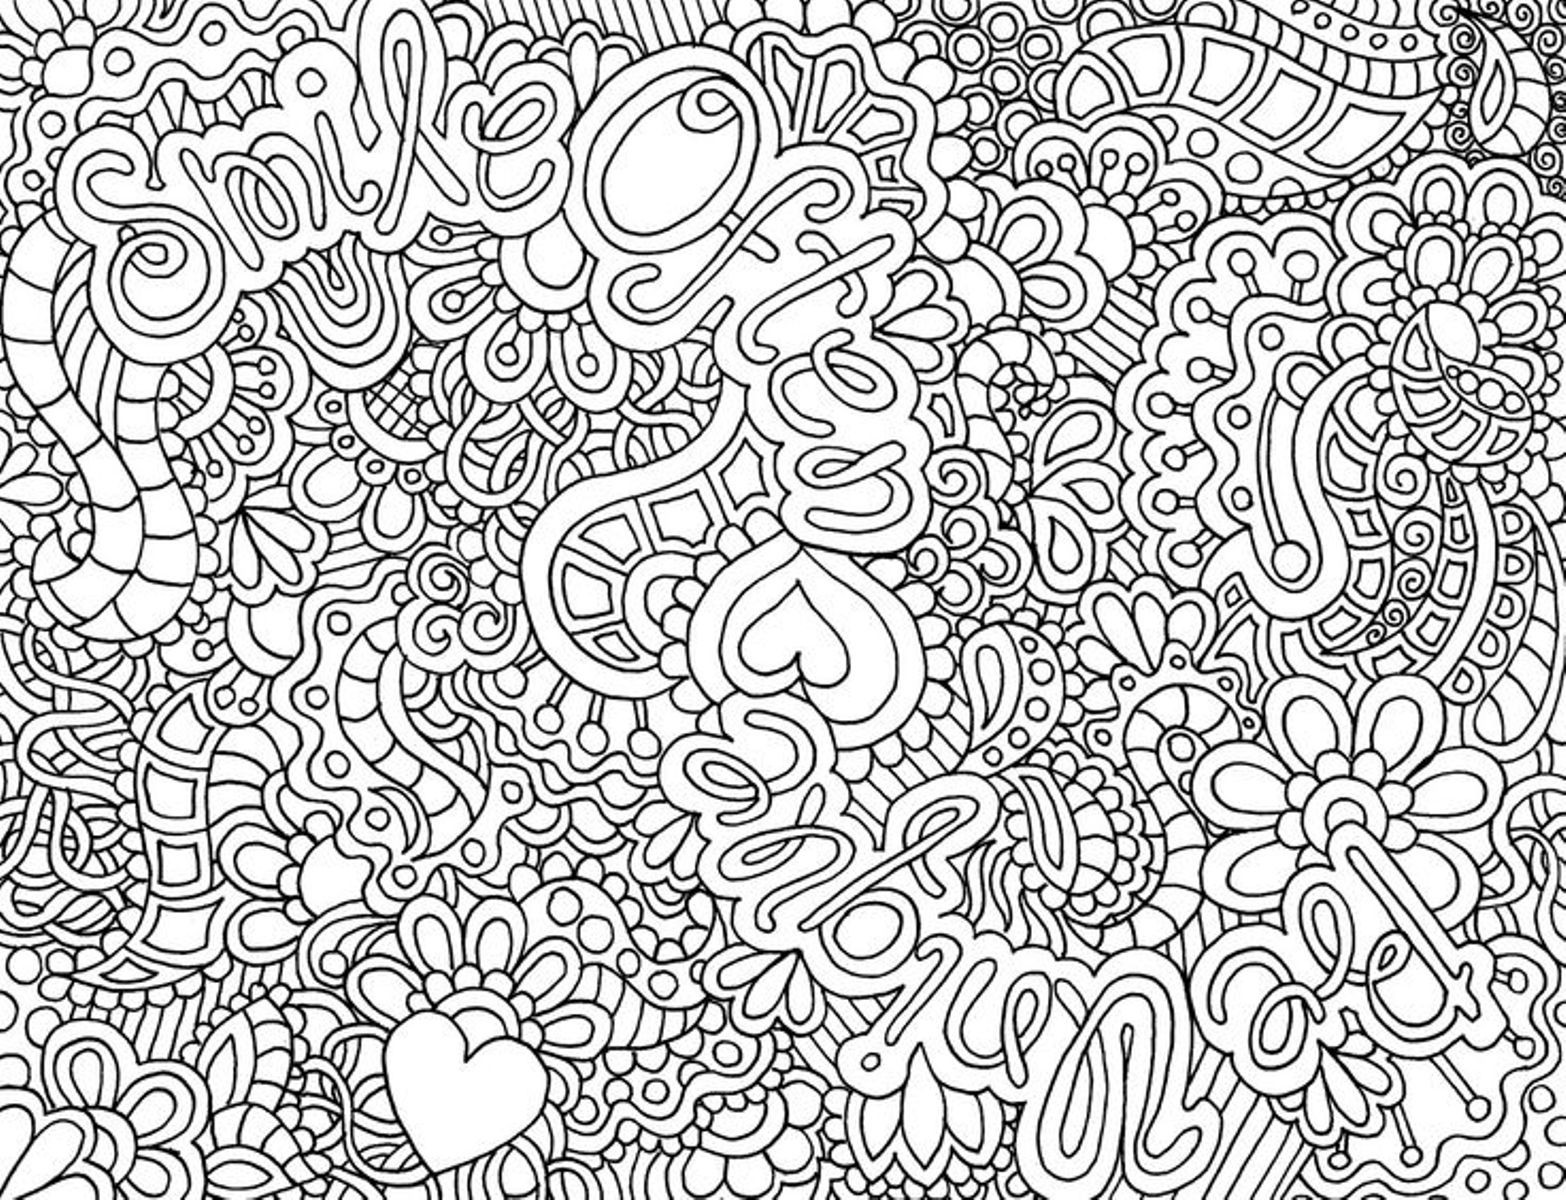 Best ideas about Detailed Coloring Pages For Adults . Save or Pin Hard Coloring Pages for Adults Best Coloring Pages For Kids Now.